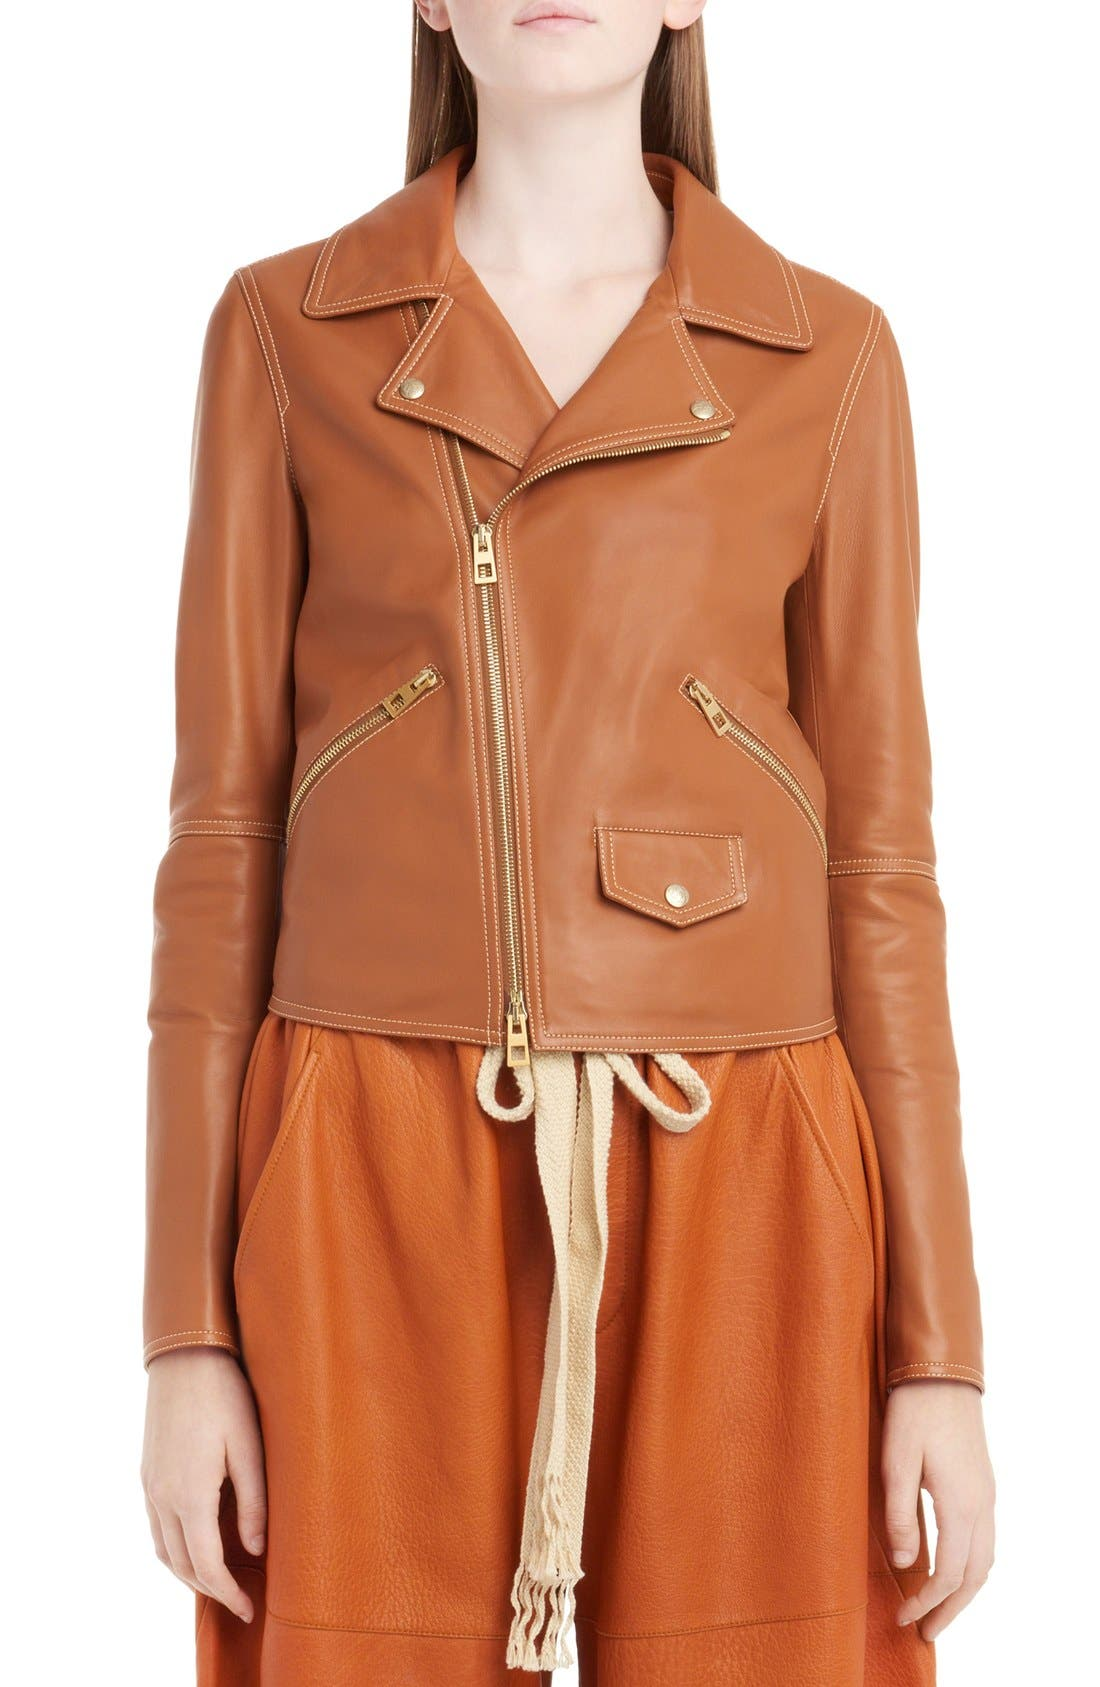 Loewe Nappa Leather Biker Jacket